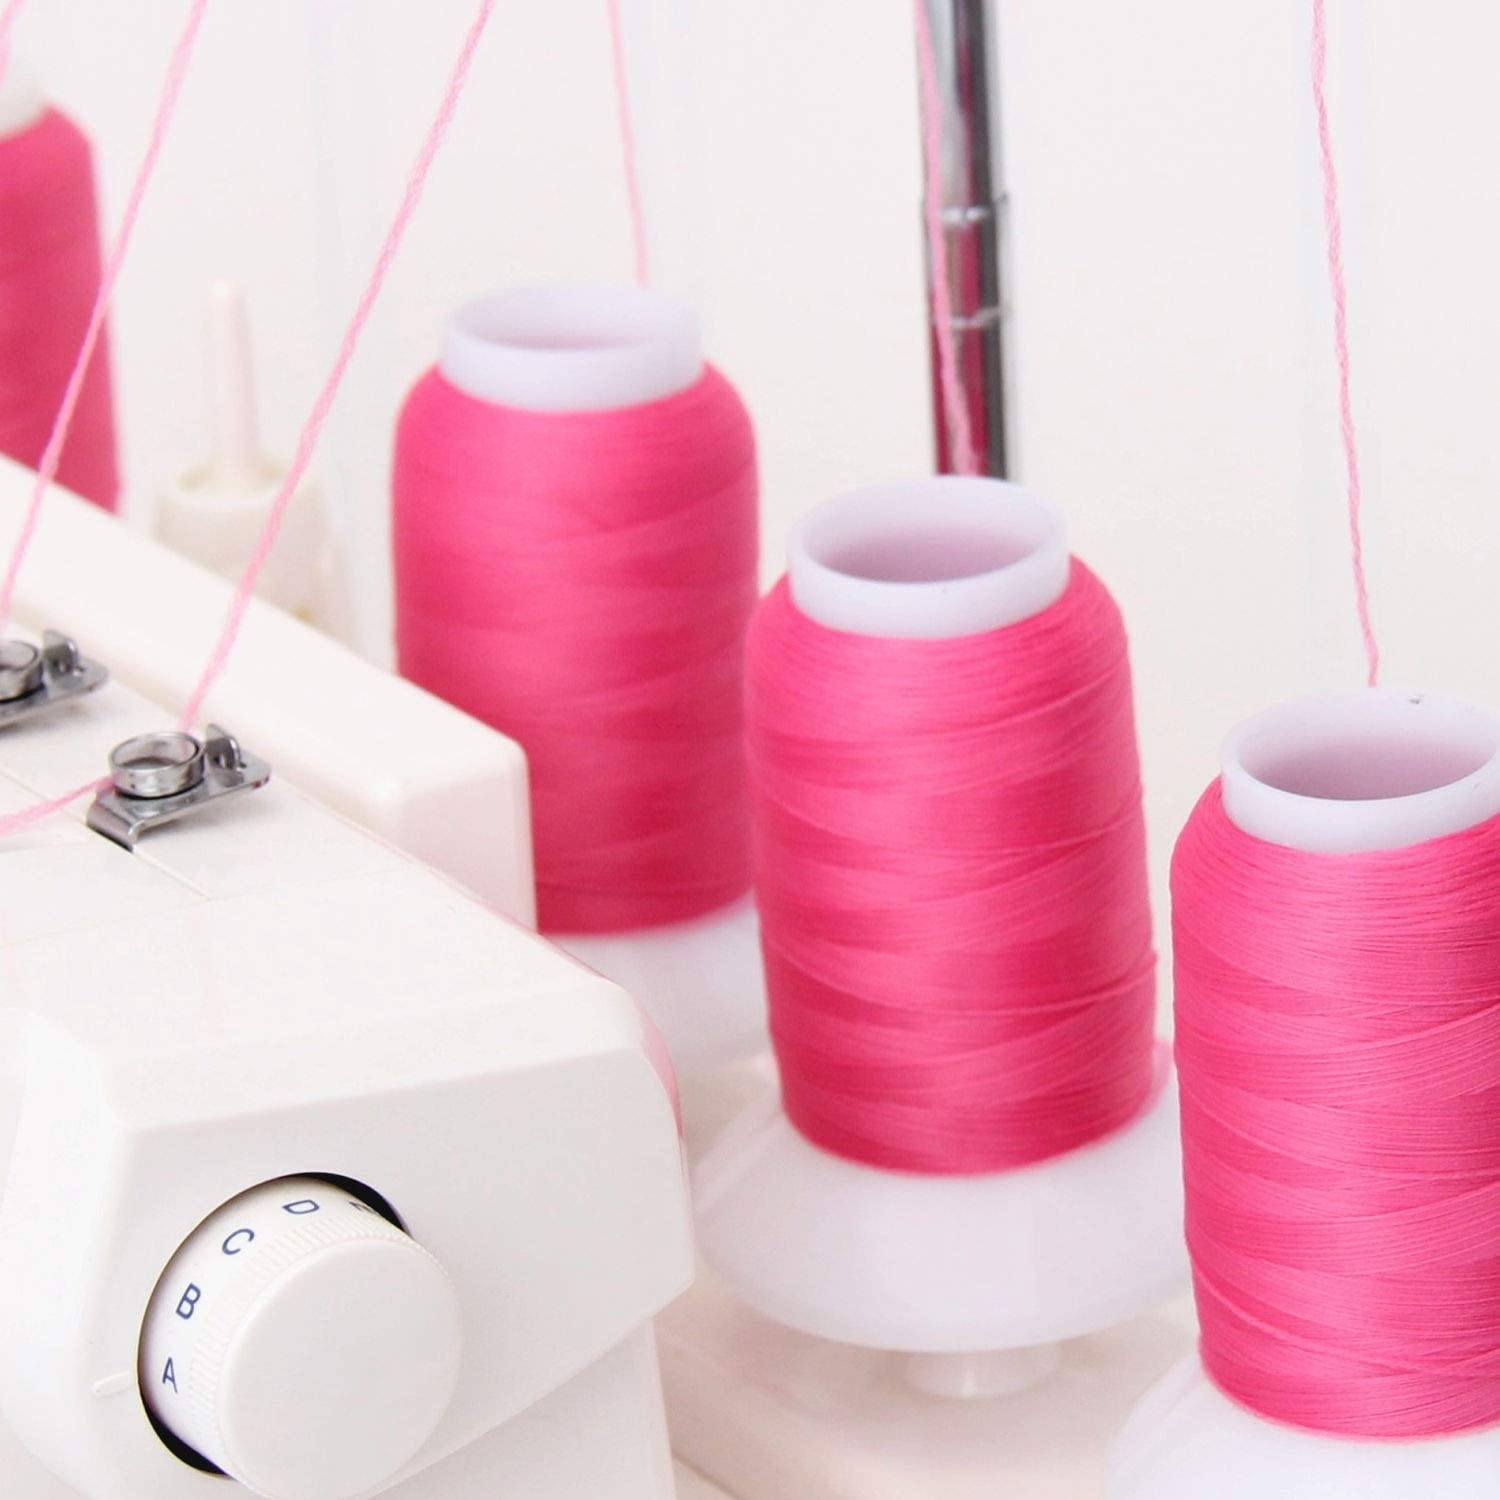 Serger Sewing Stretchy Thread 50 Colors Available Threadart Wooly Nylon Thread GREY//BLUE 1000m Spools Color 9125